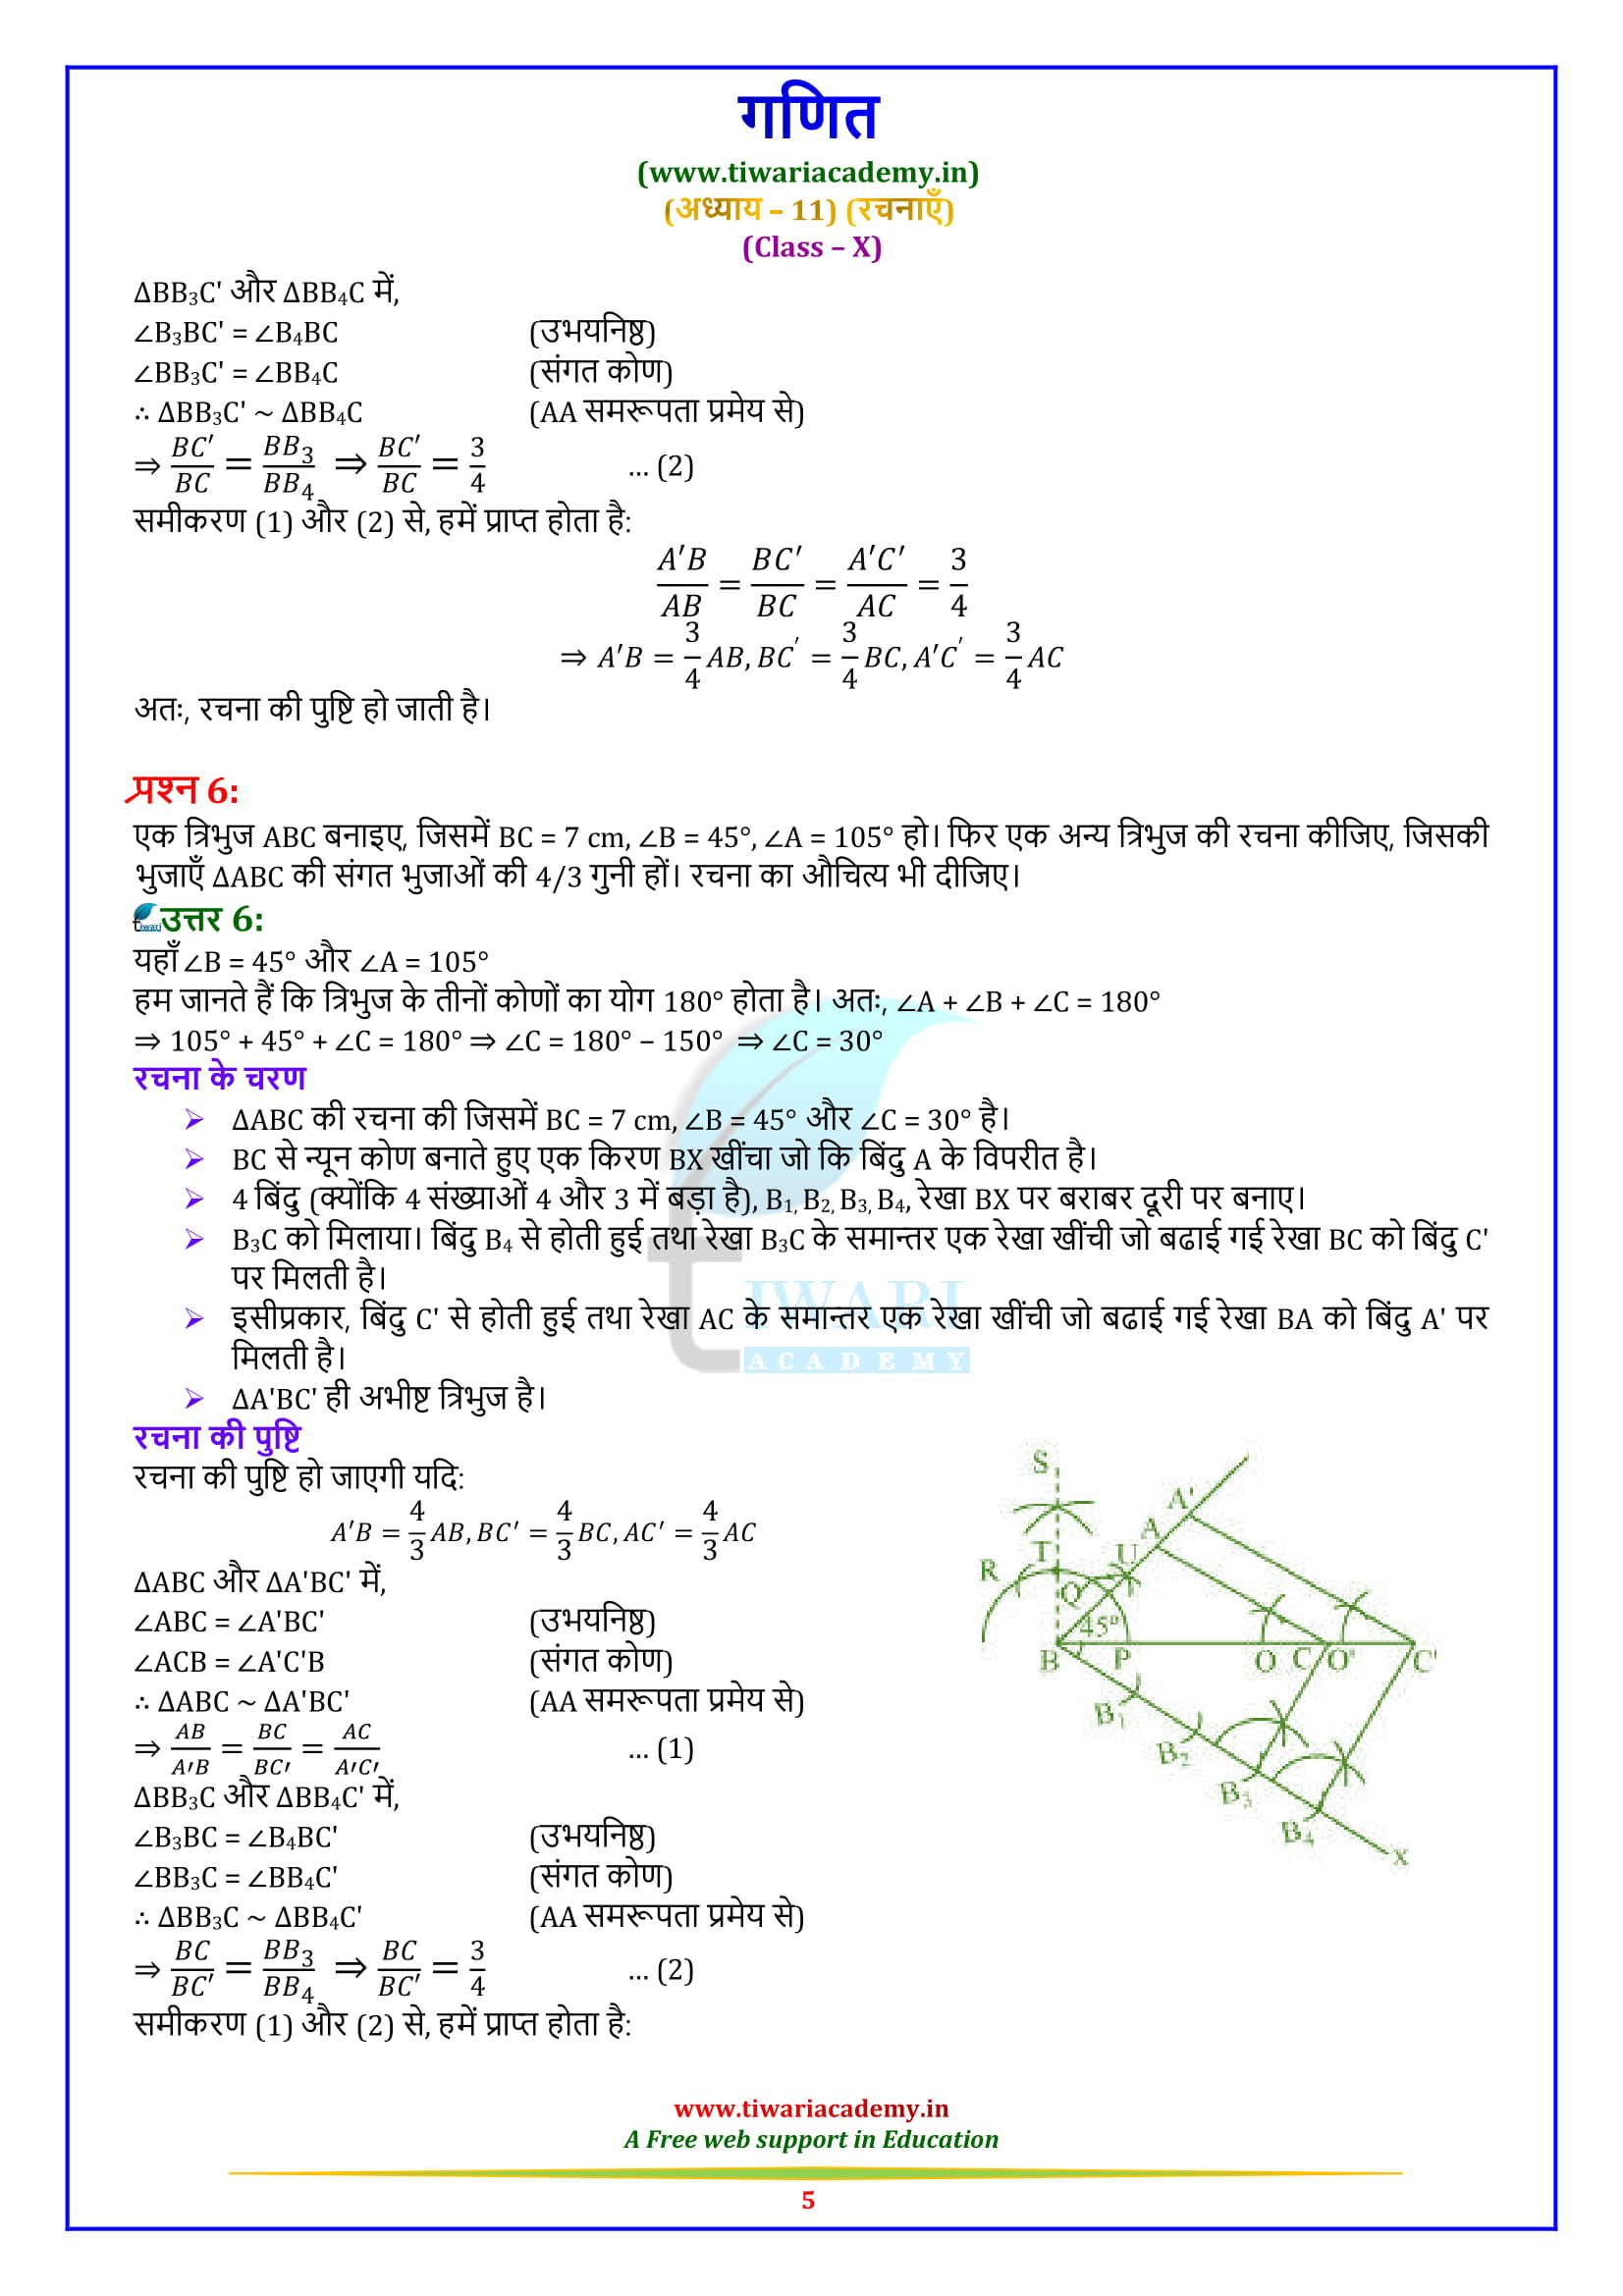 Class 10 Maths Exercise 11.1 solutions download in pdf